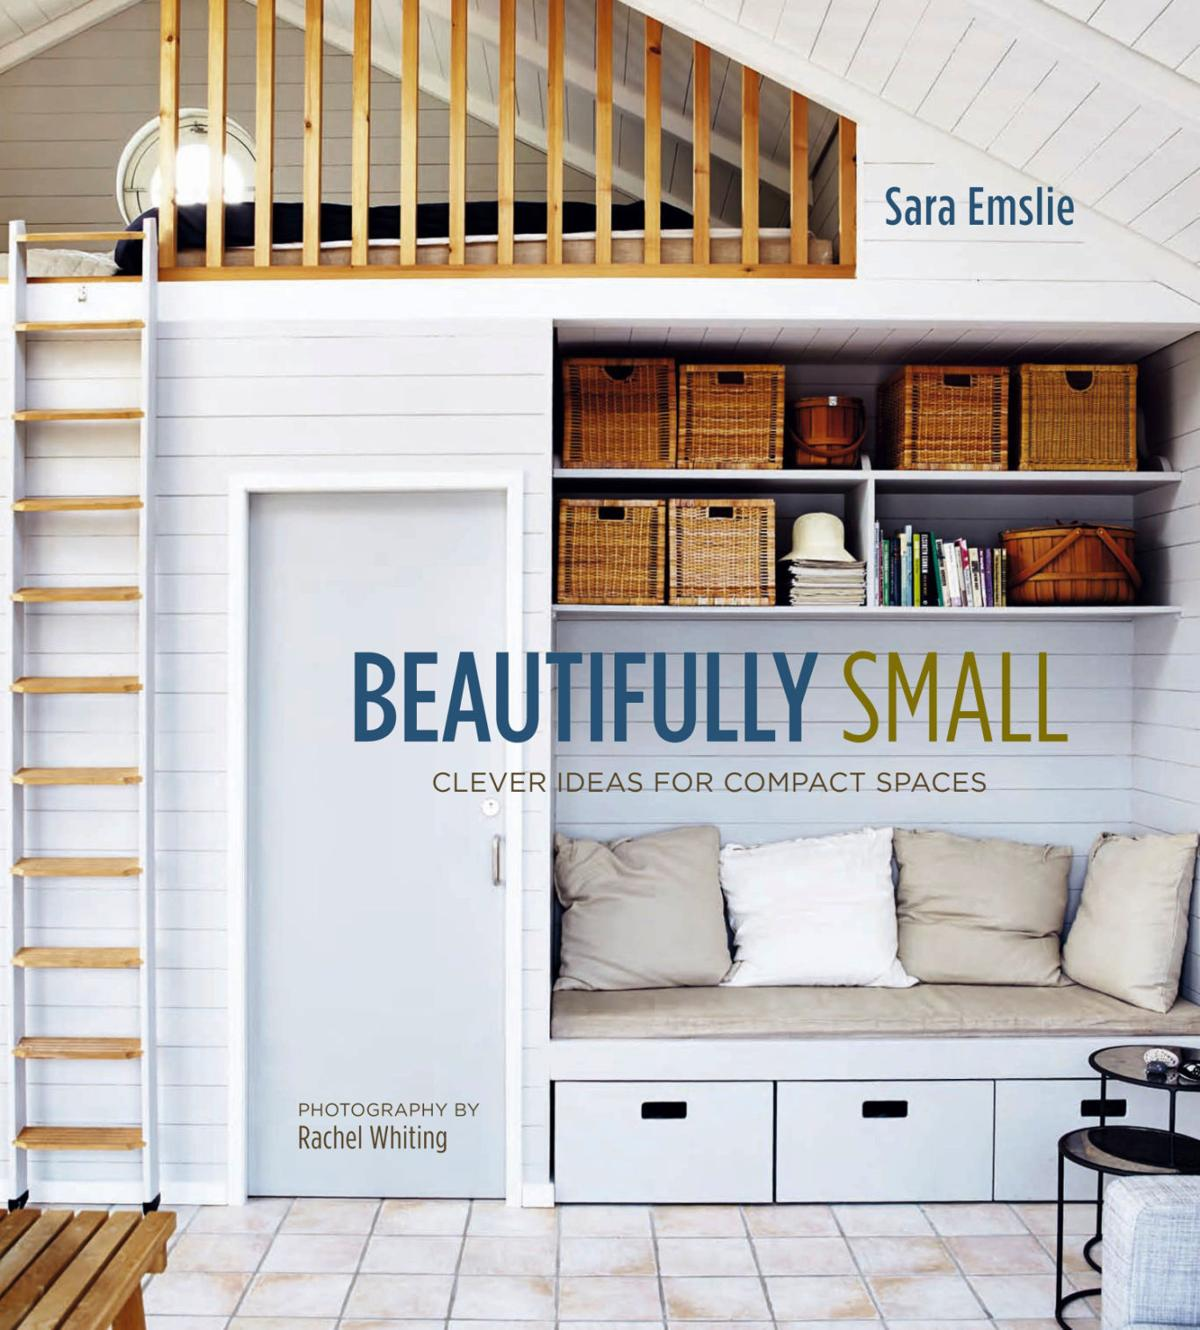 Tiny house trend: 6 style lessons for small spaces | Lifestyles ...